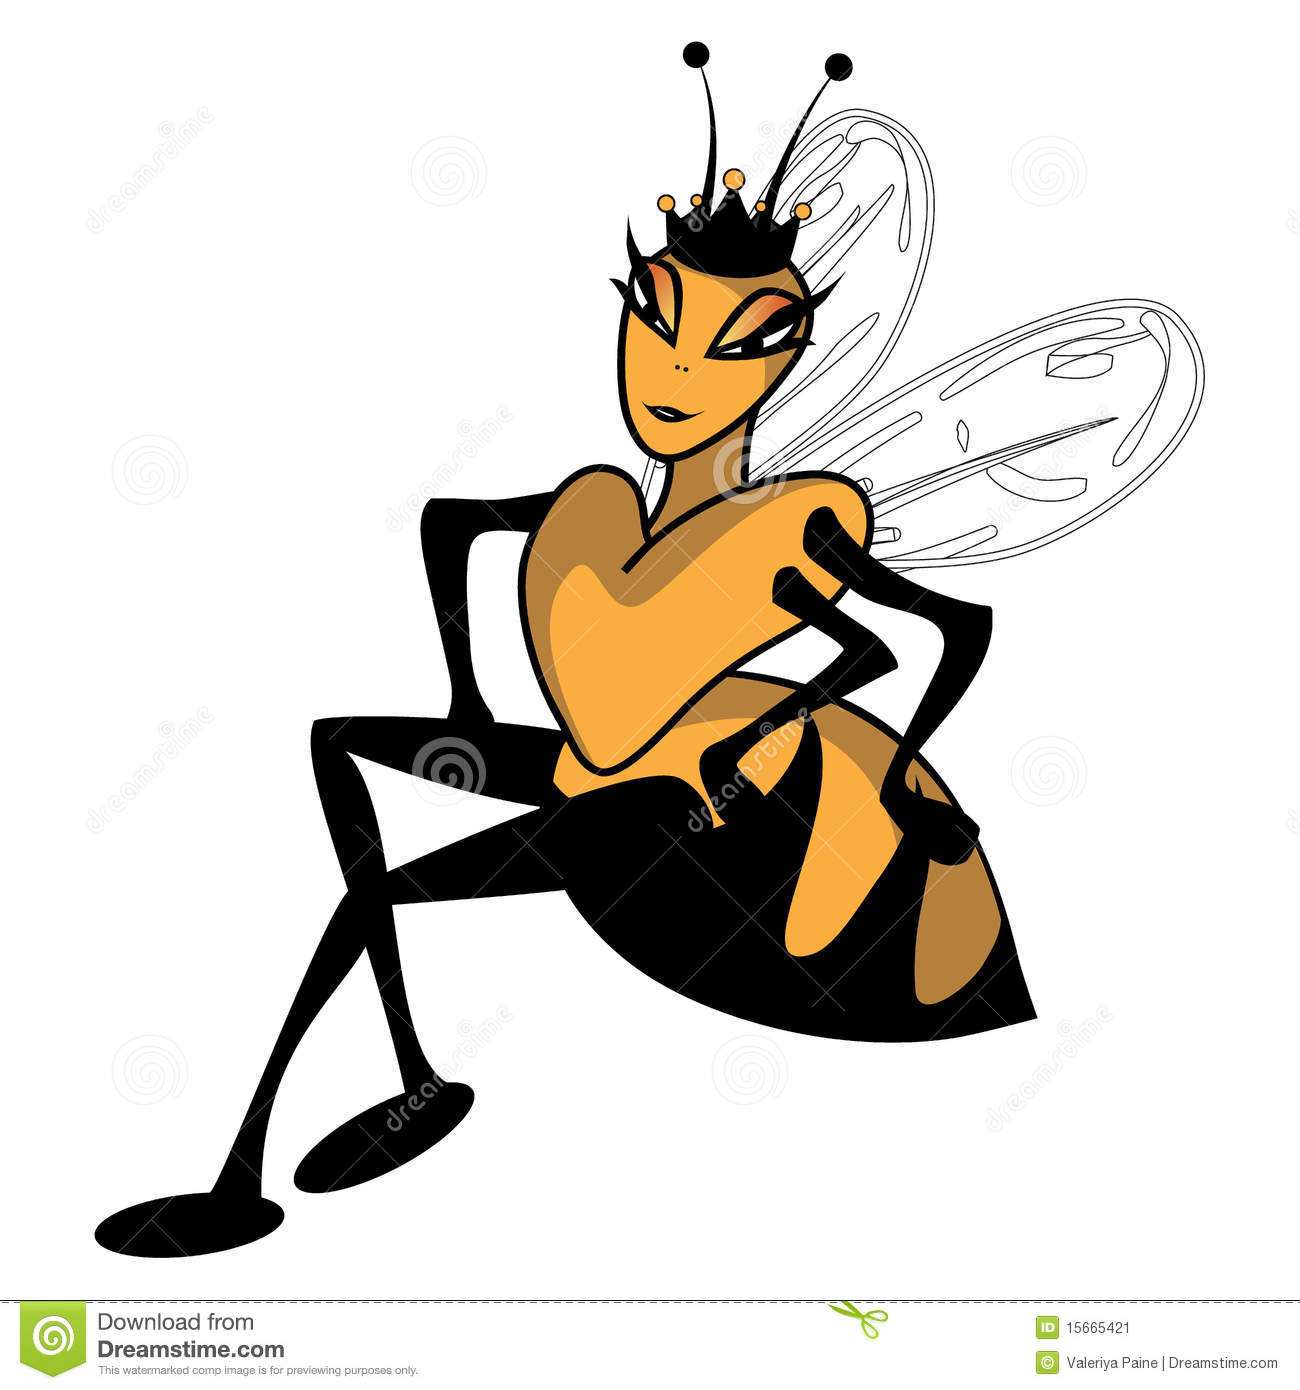 Illustration of a queen bee in a sitting position.